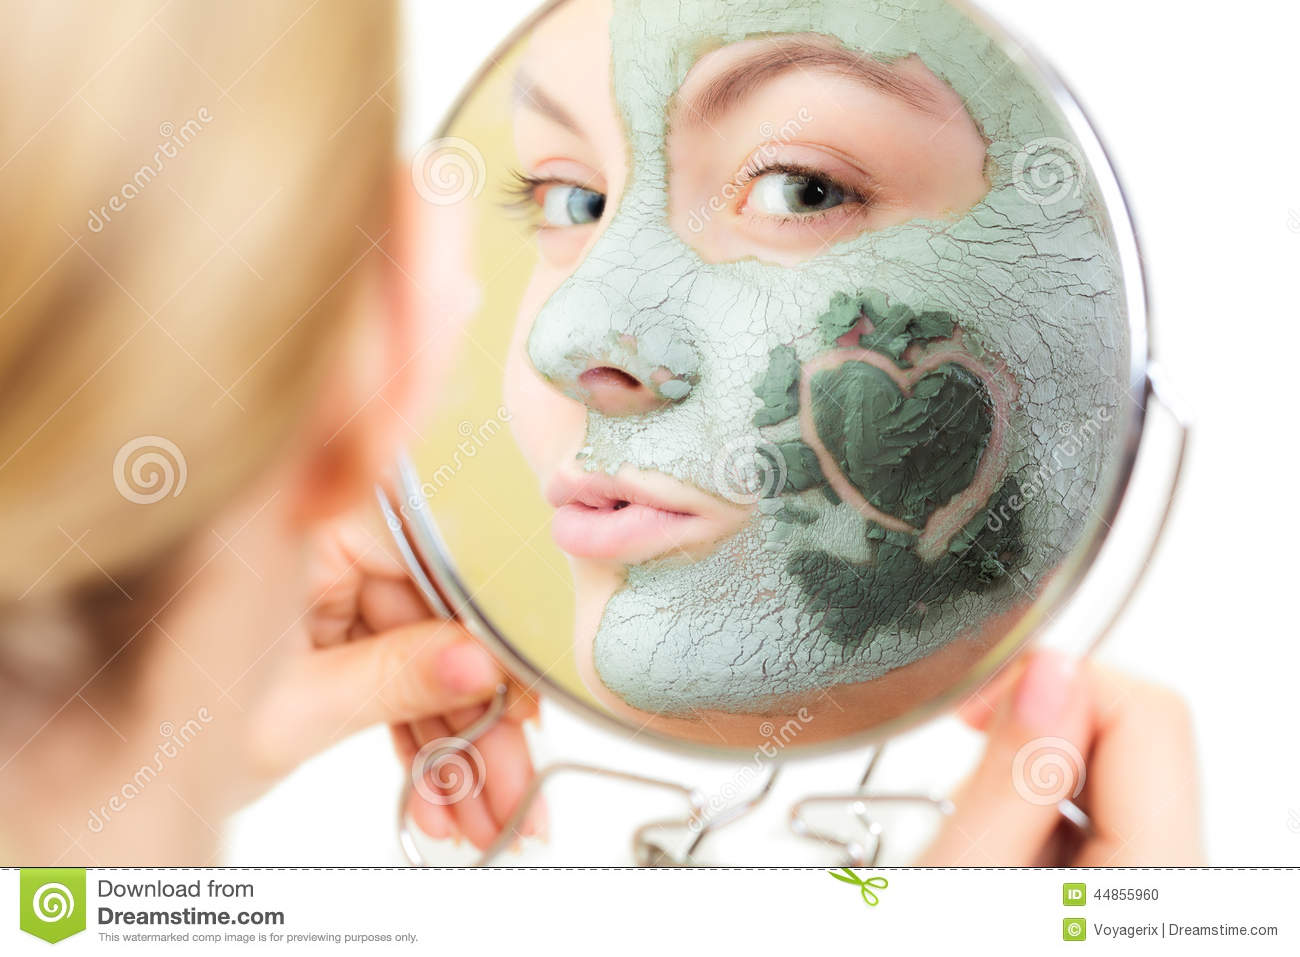 how to take care of dry face